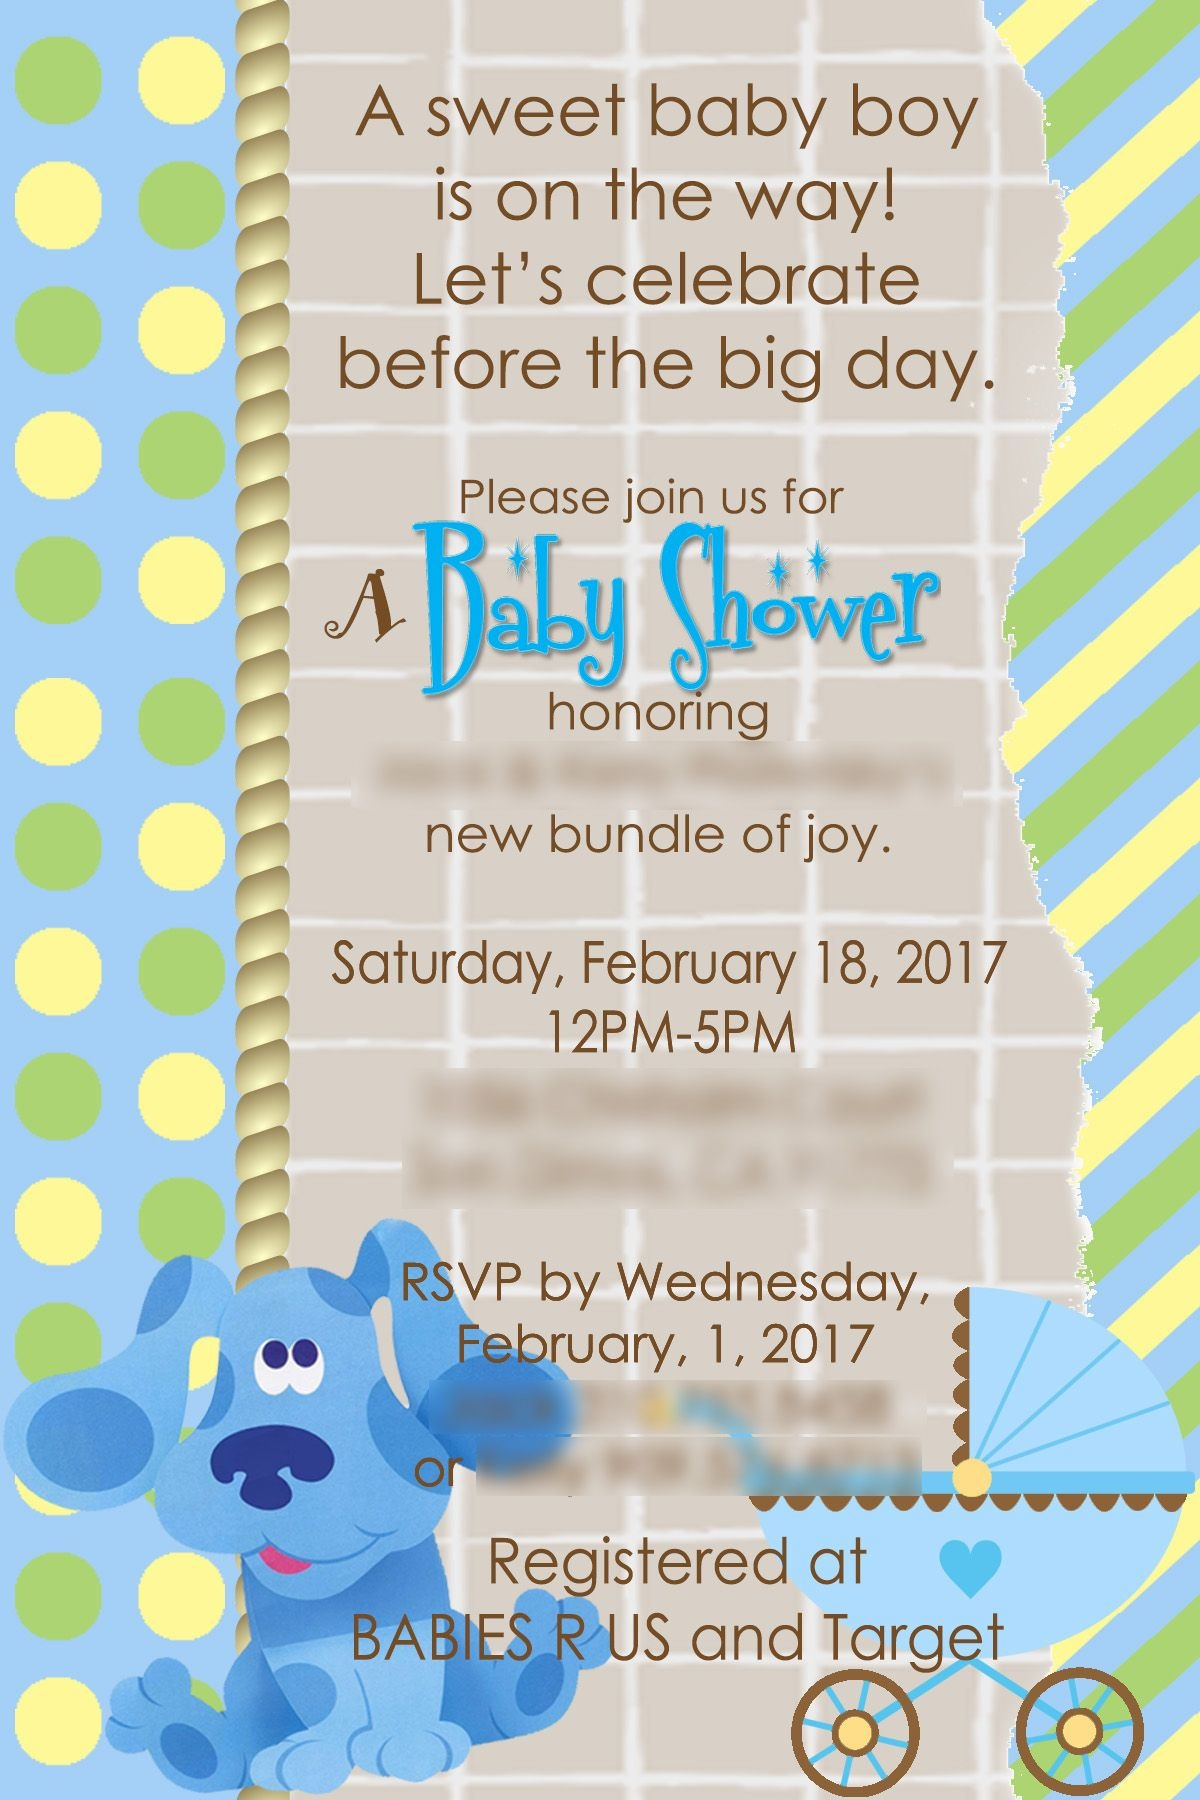 Blues Clues Baby Shower Invite. | Lil Jr's Corner In 2019 | Baby - Blue's Clues Invitations Free Printable